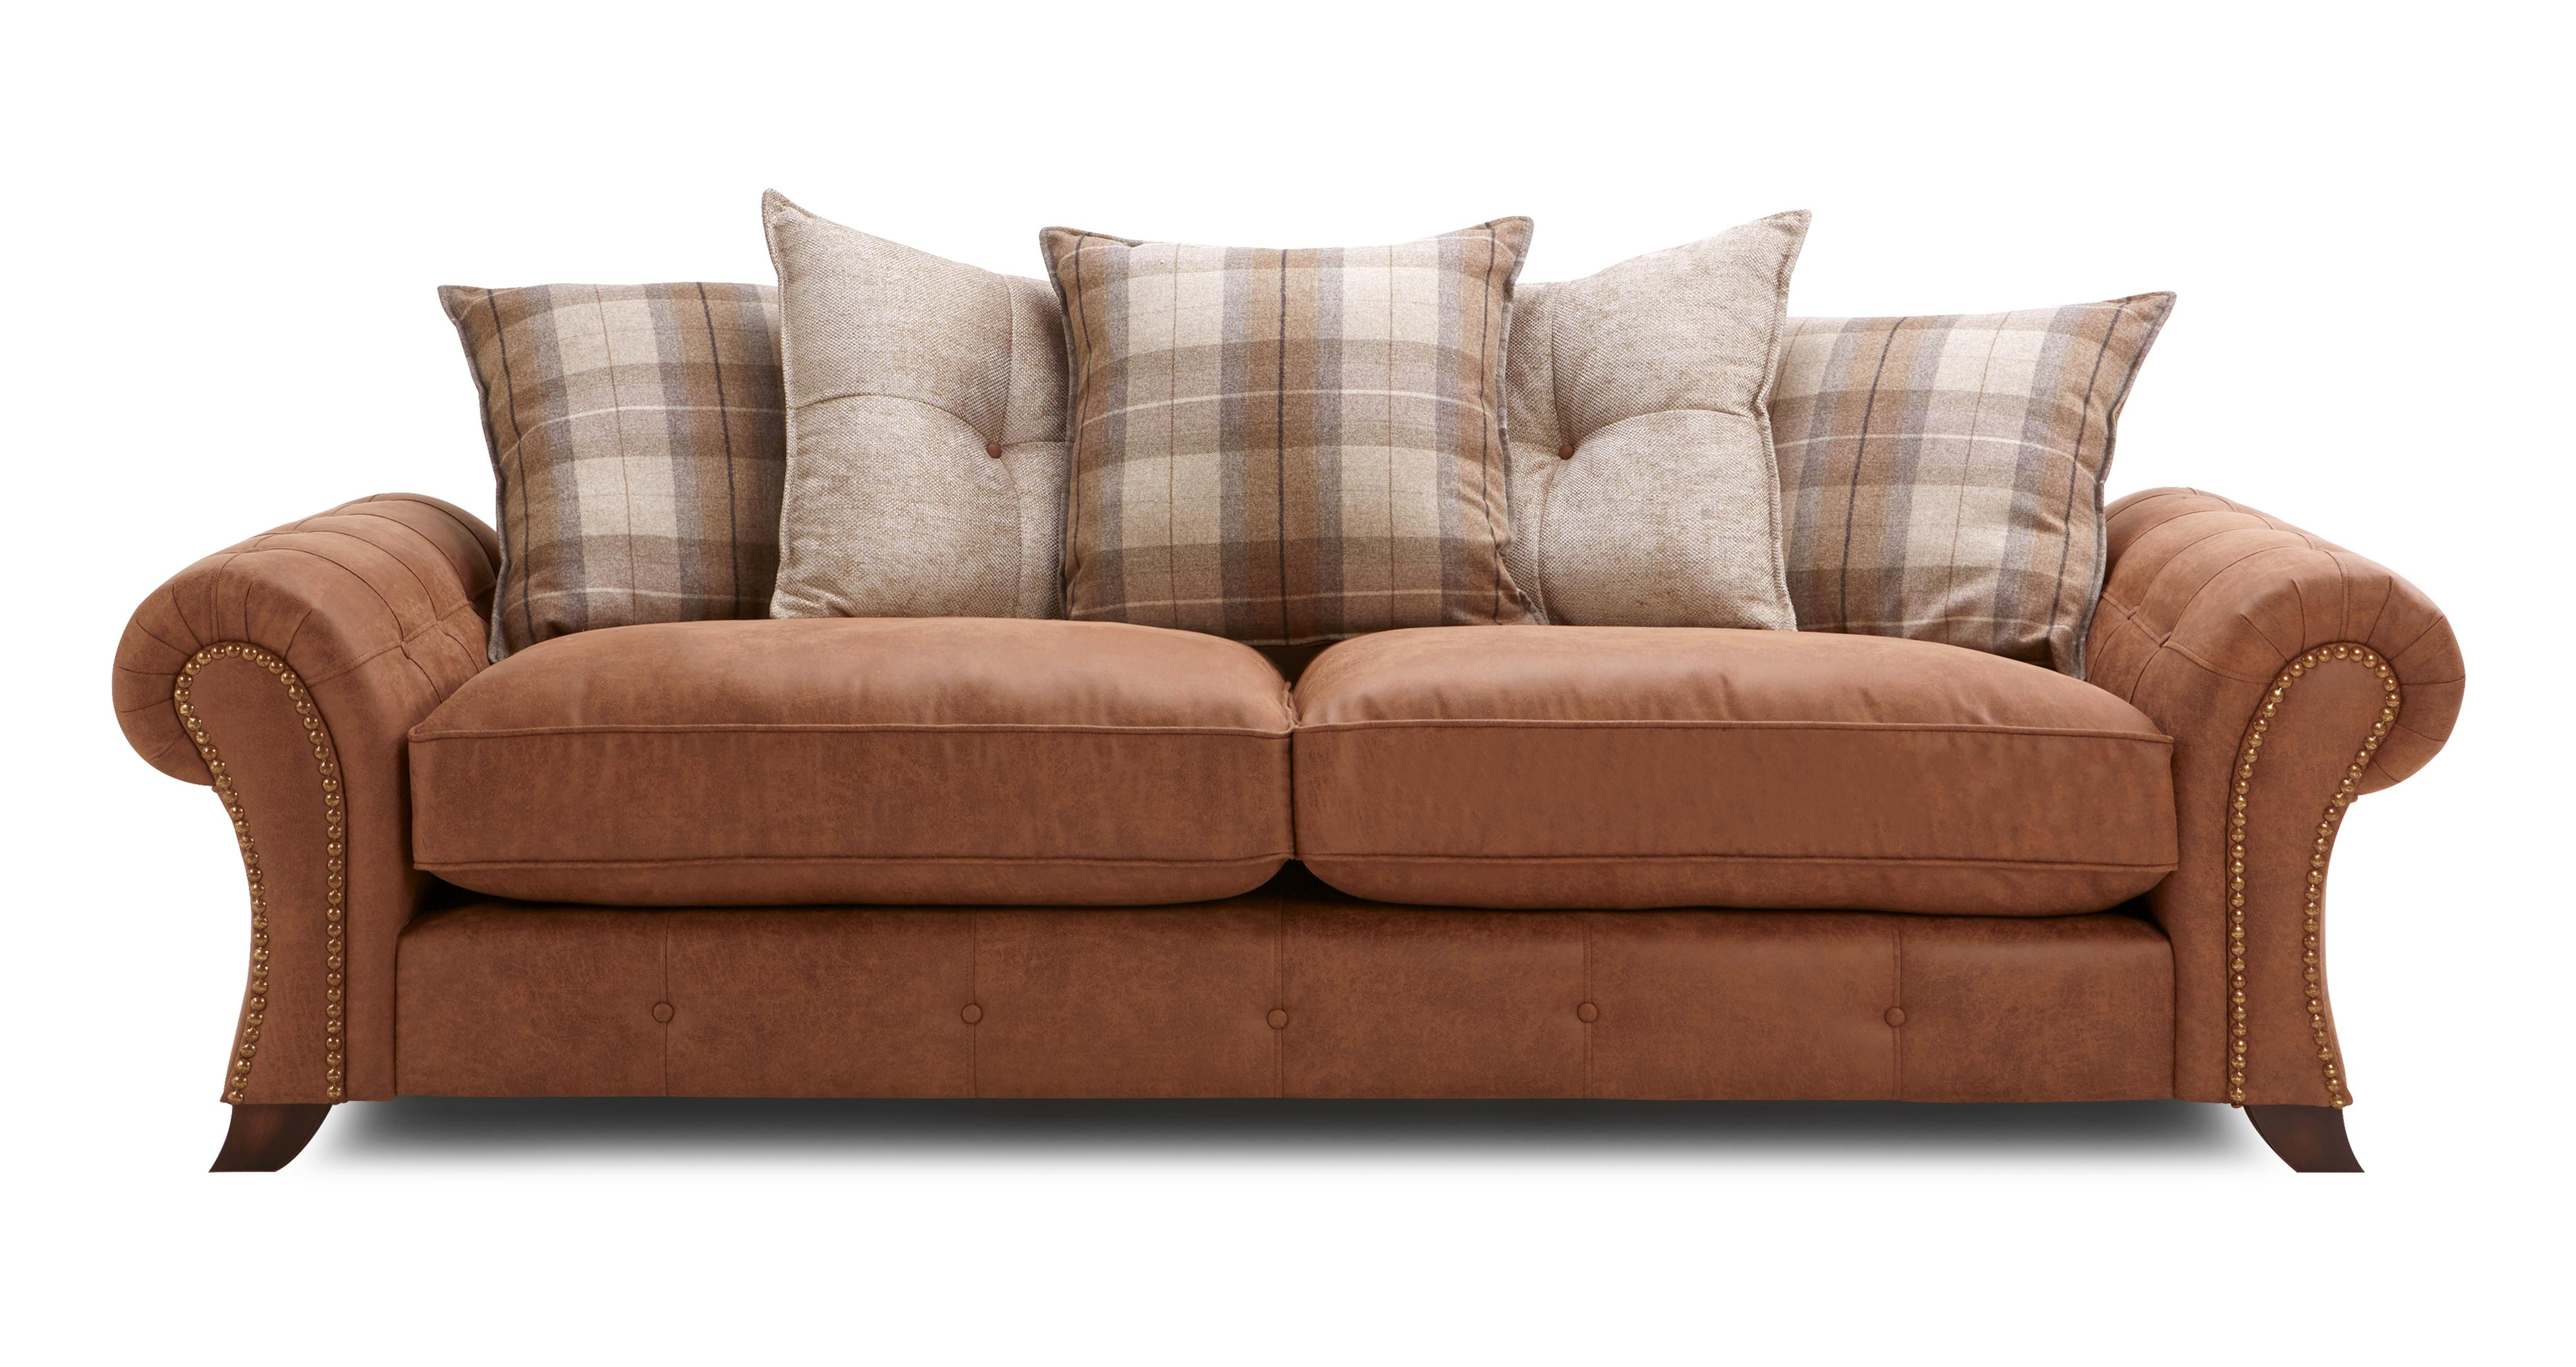 Dhs sofa Dfs 4 seater leather sofa